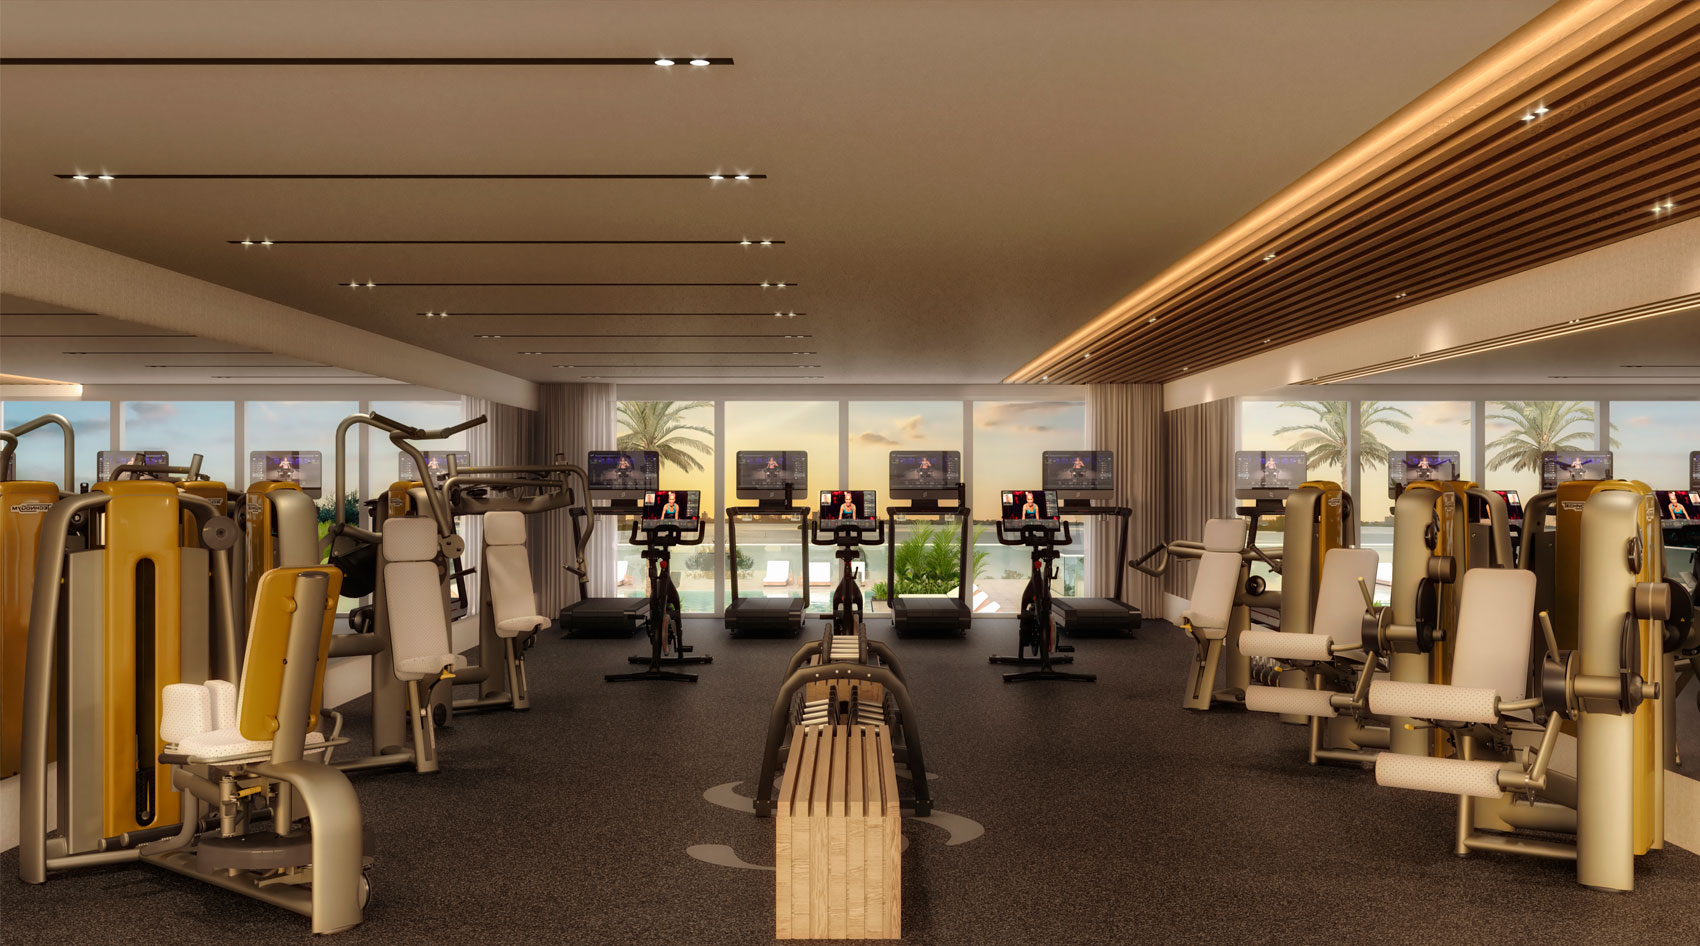 Gym Serena by the Sea